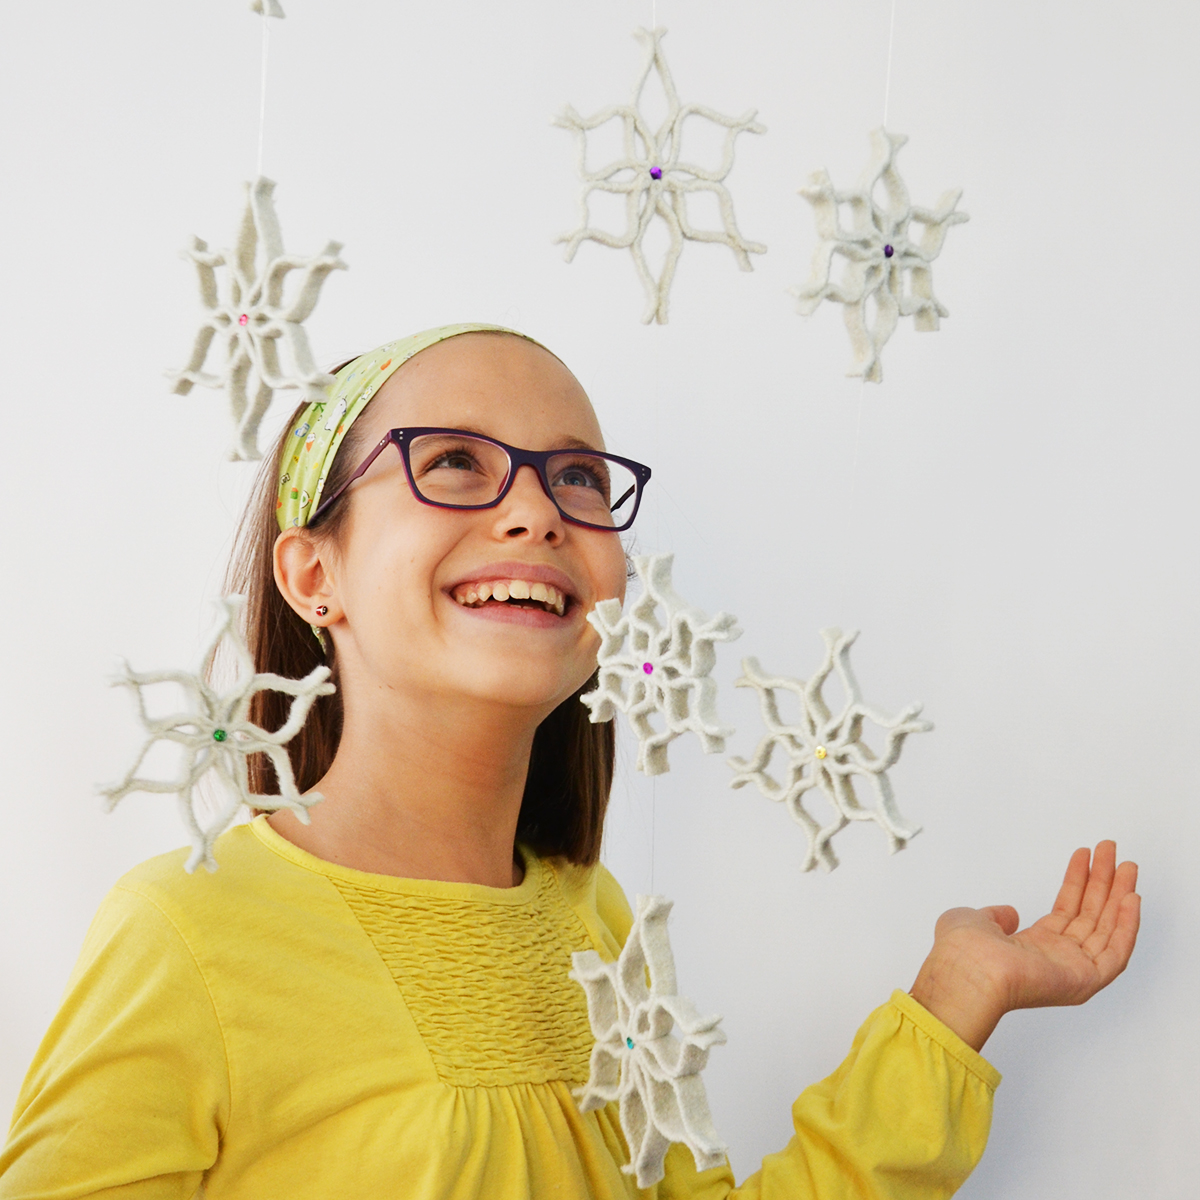 Create the magic of snowfall inside your home, but without the cold! Make these no sew felt snowflake ornaments from a surprising repurposed material: felted wool sweaters! Hang them on the Christmas tree or string them as a garland or from the ceiling for a magical decorative effect! #diysnowflake #feltsnowflake #snowflakechristmasornament